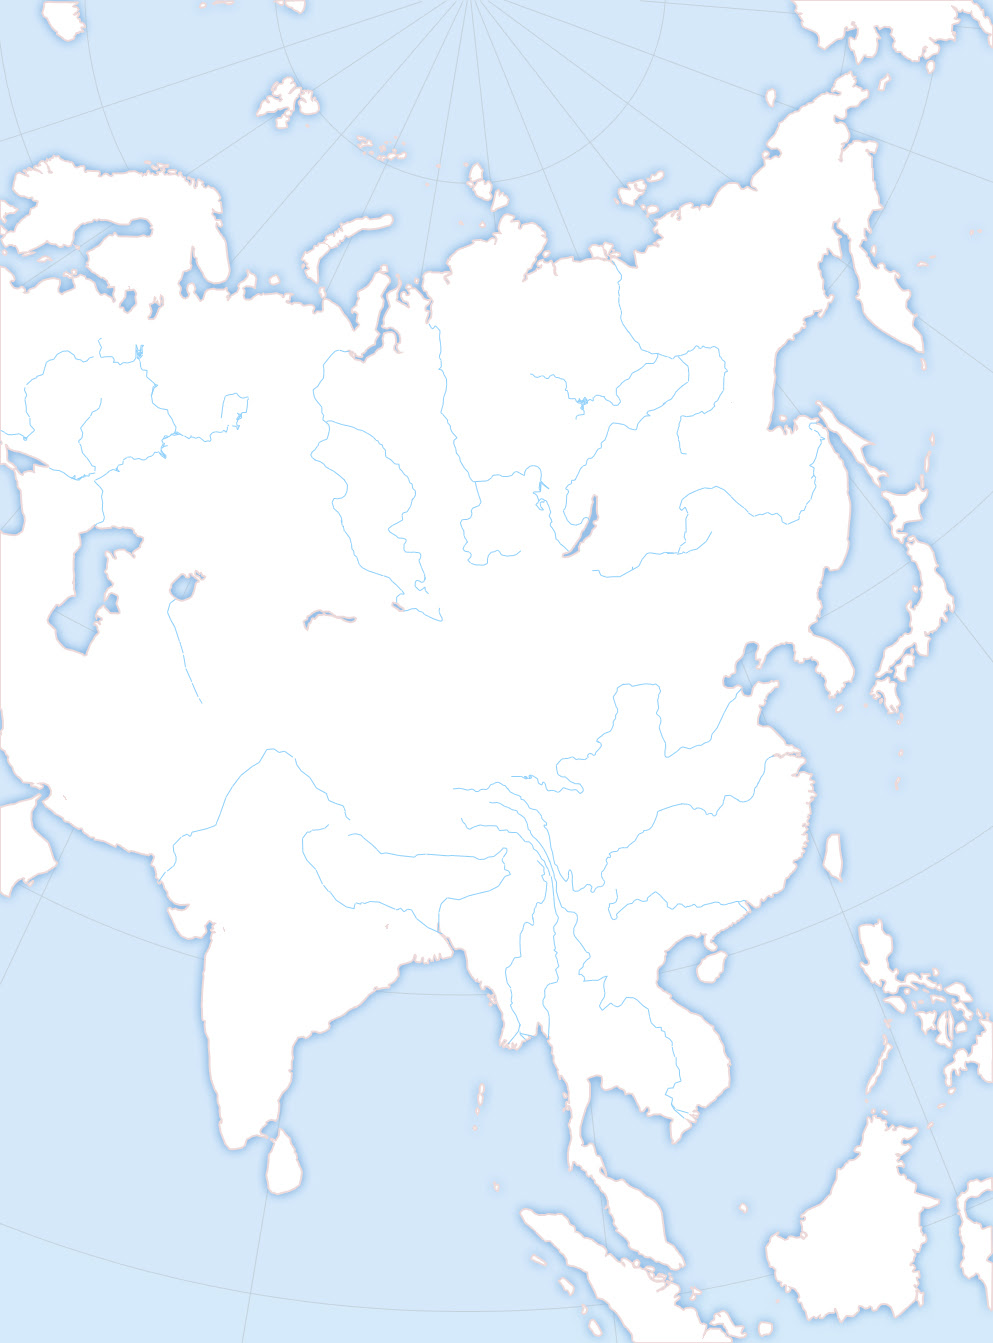 Map Of Europe Blank No Borders.Blank Map Of Asia No Borders